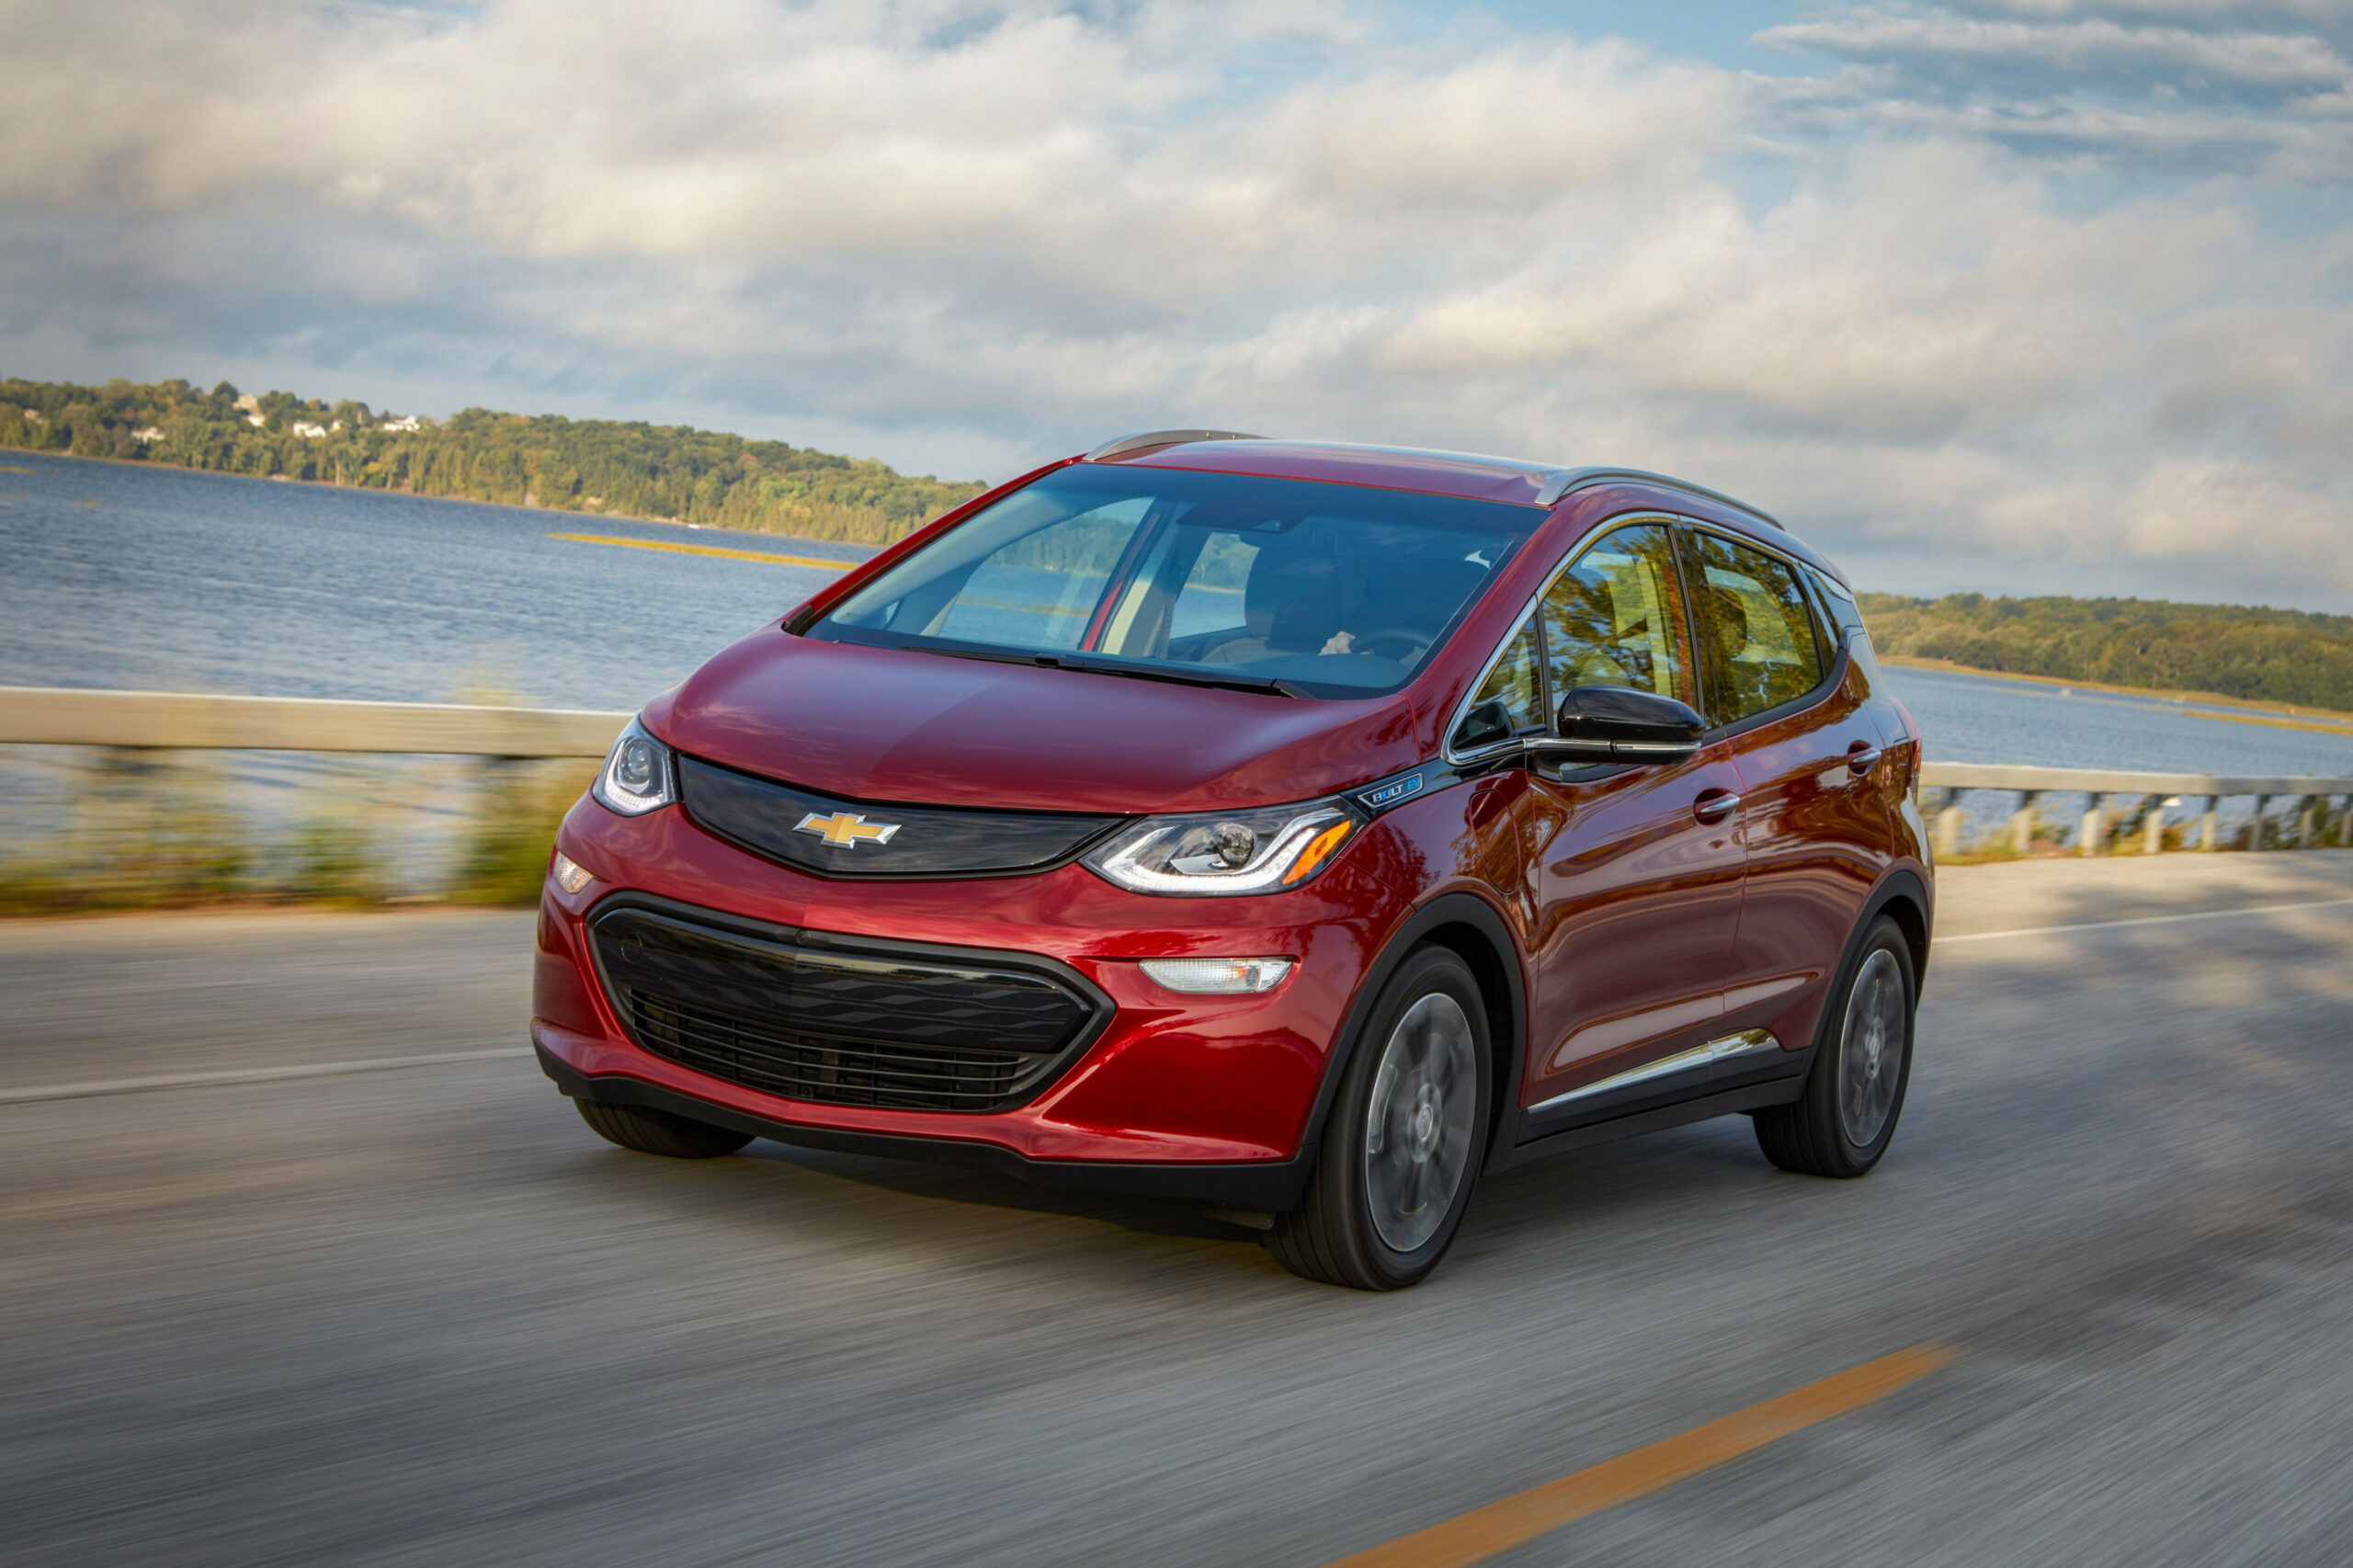 9 Chevrolet Bolt EV Review, Pricing, and Specs - 2020 chevrolet volt premier for sale